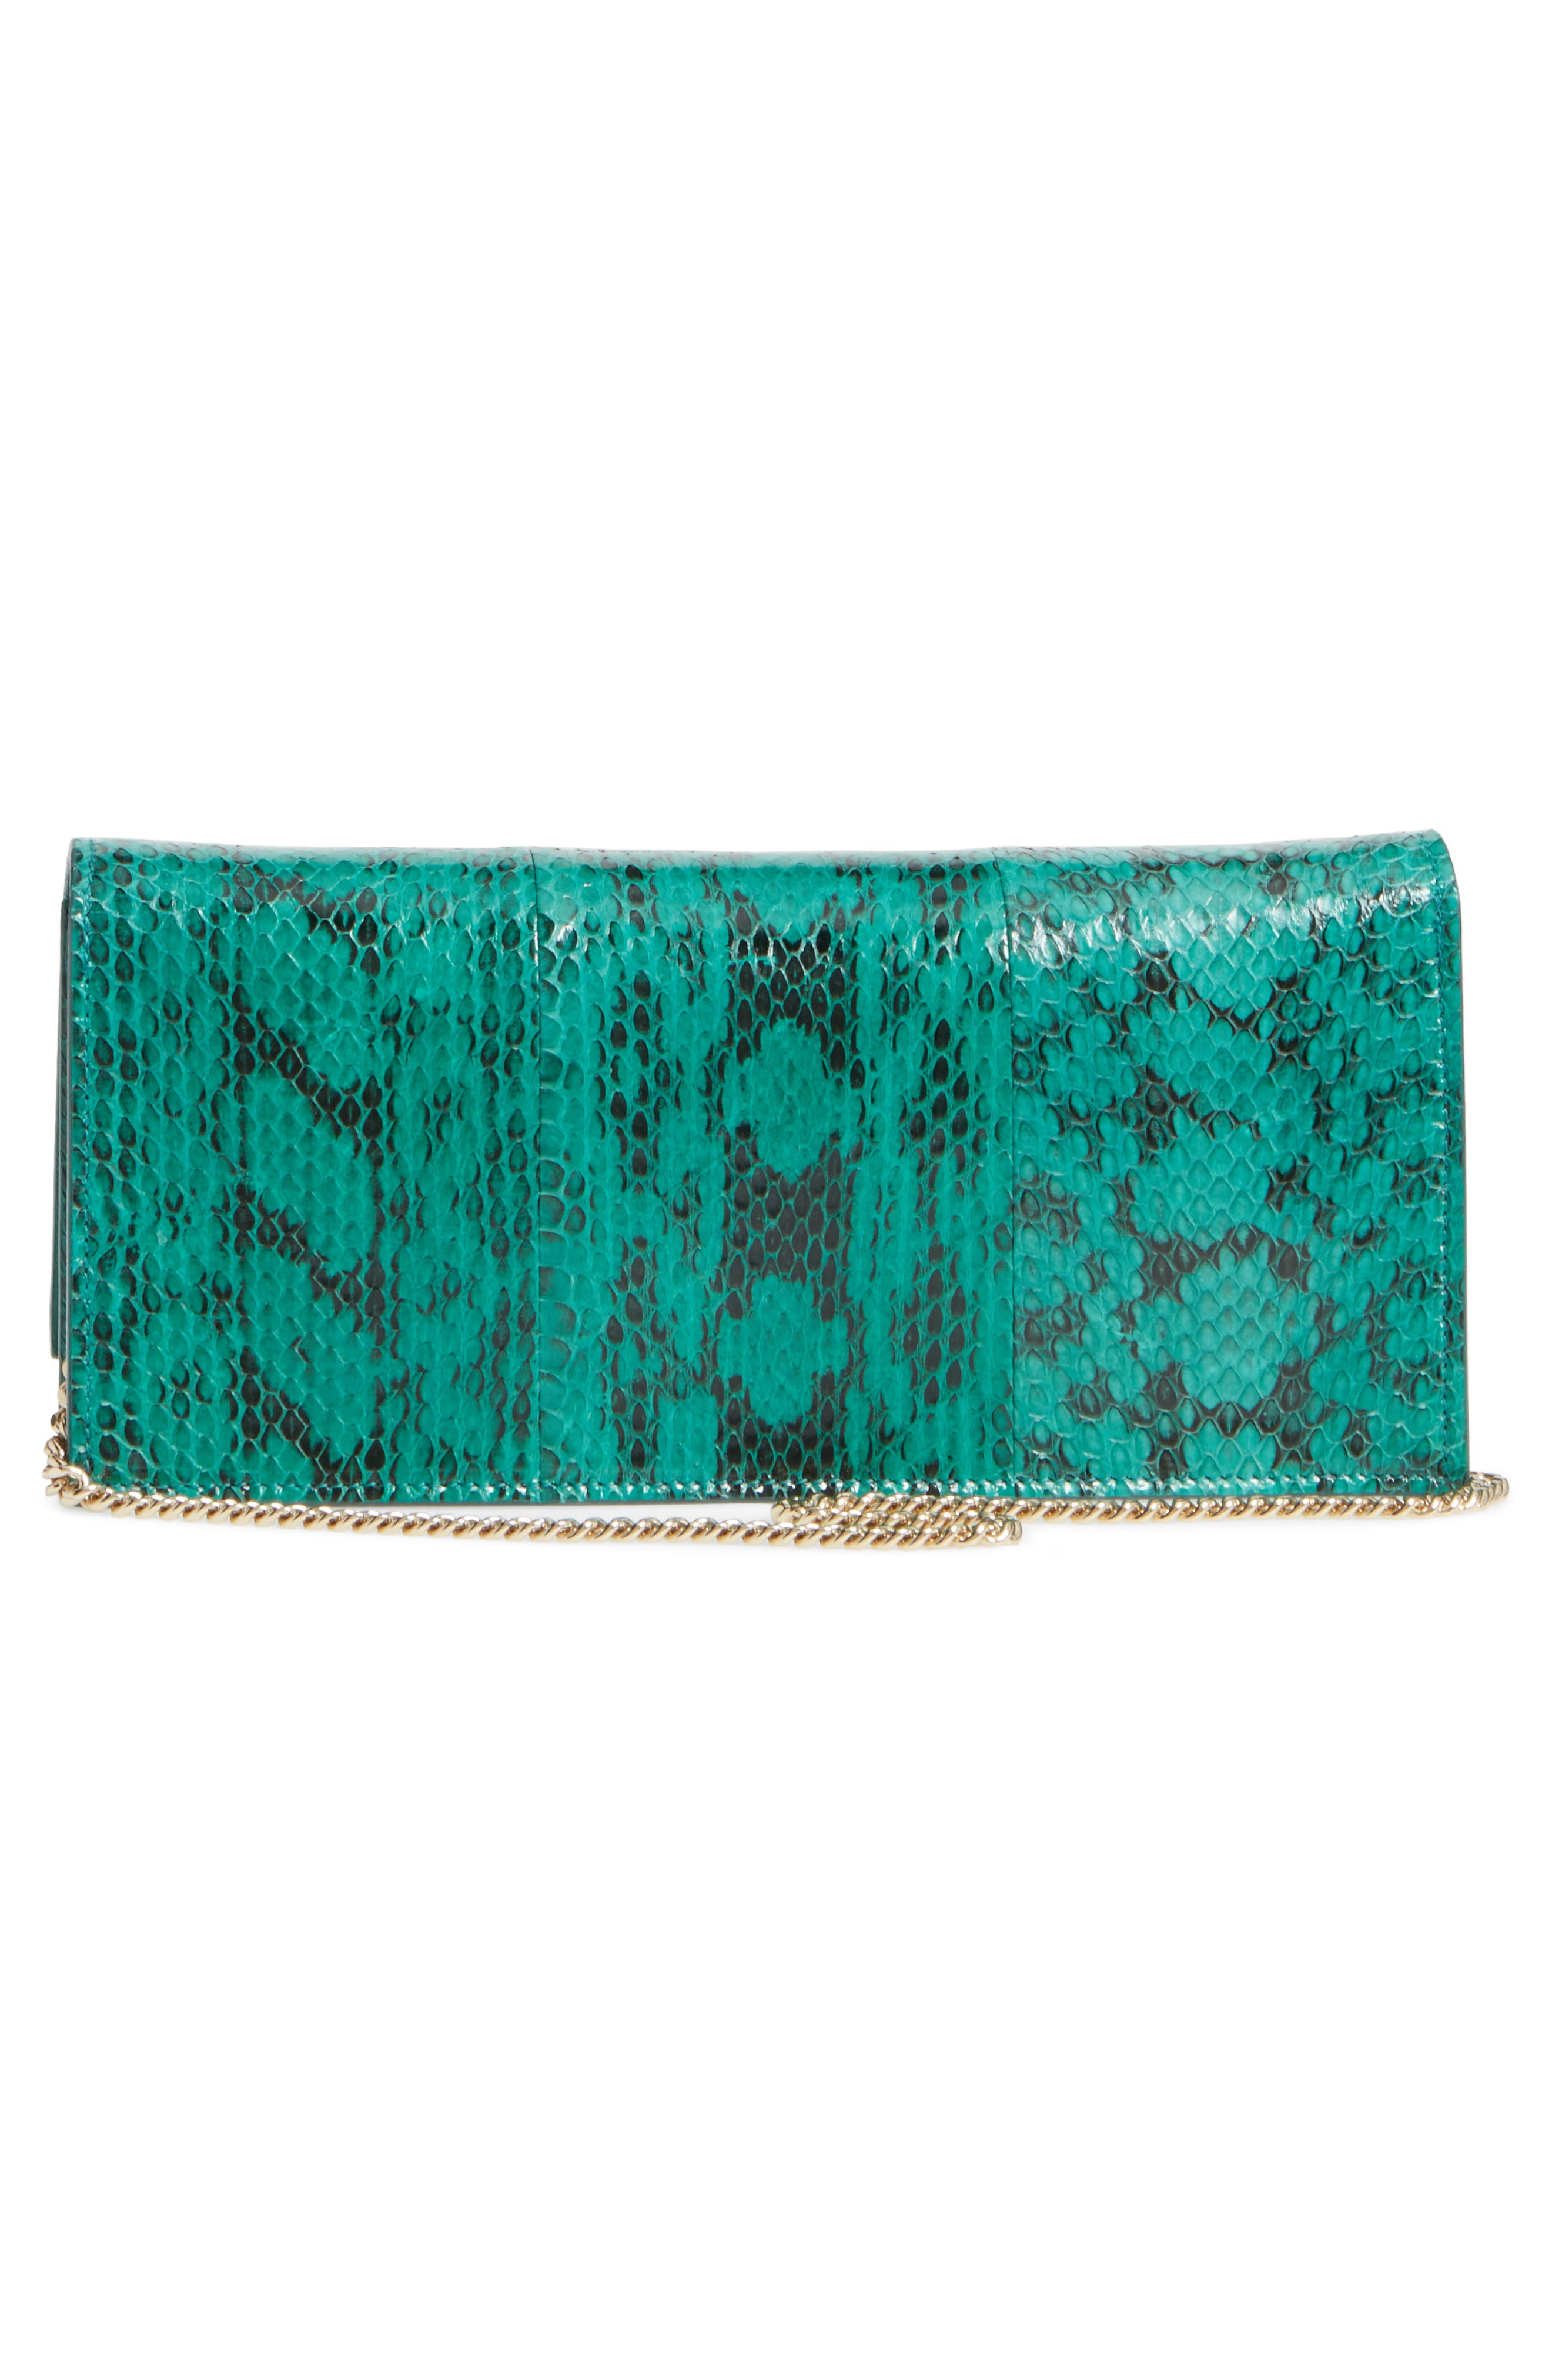 Fie Genuine Snakeskin Clutch,                             Alternate thumbnail 3, color,                             300